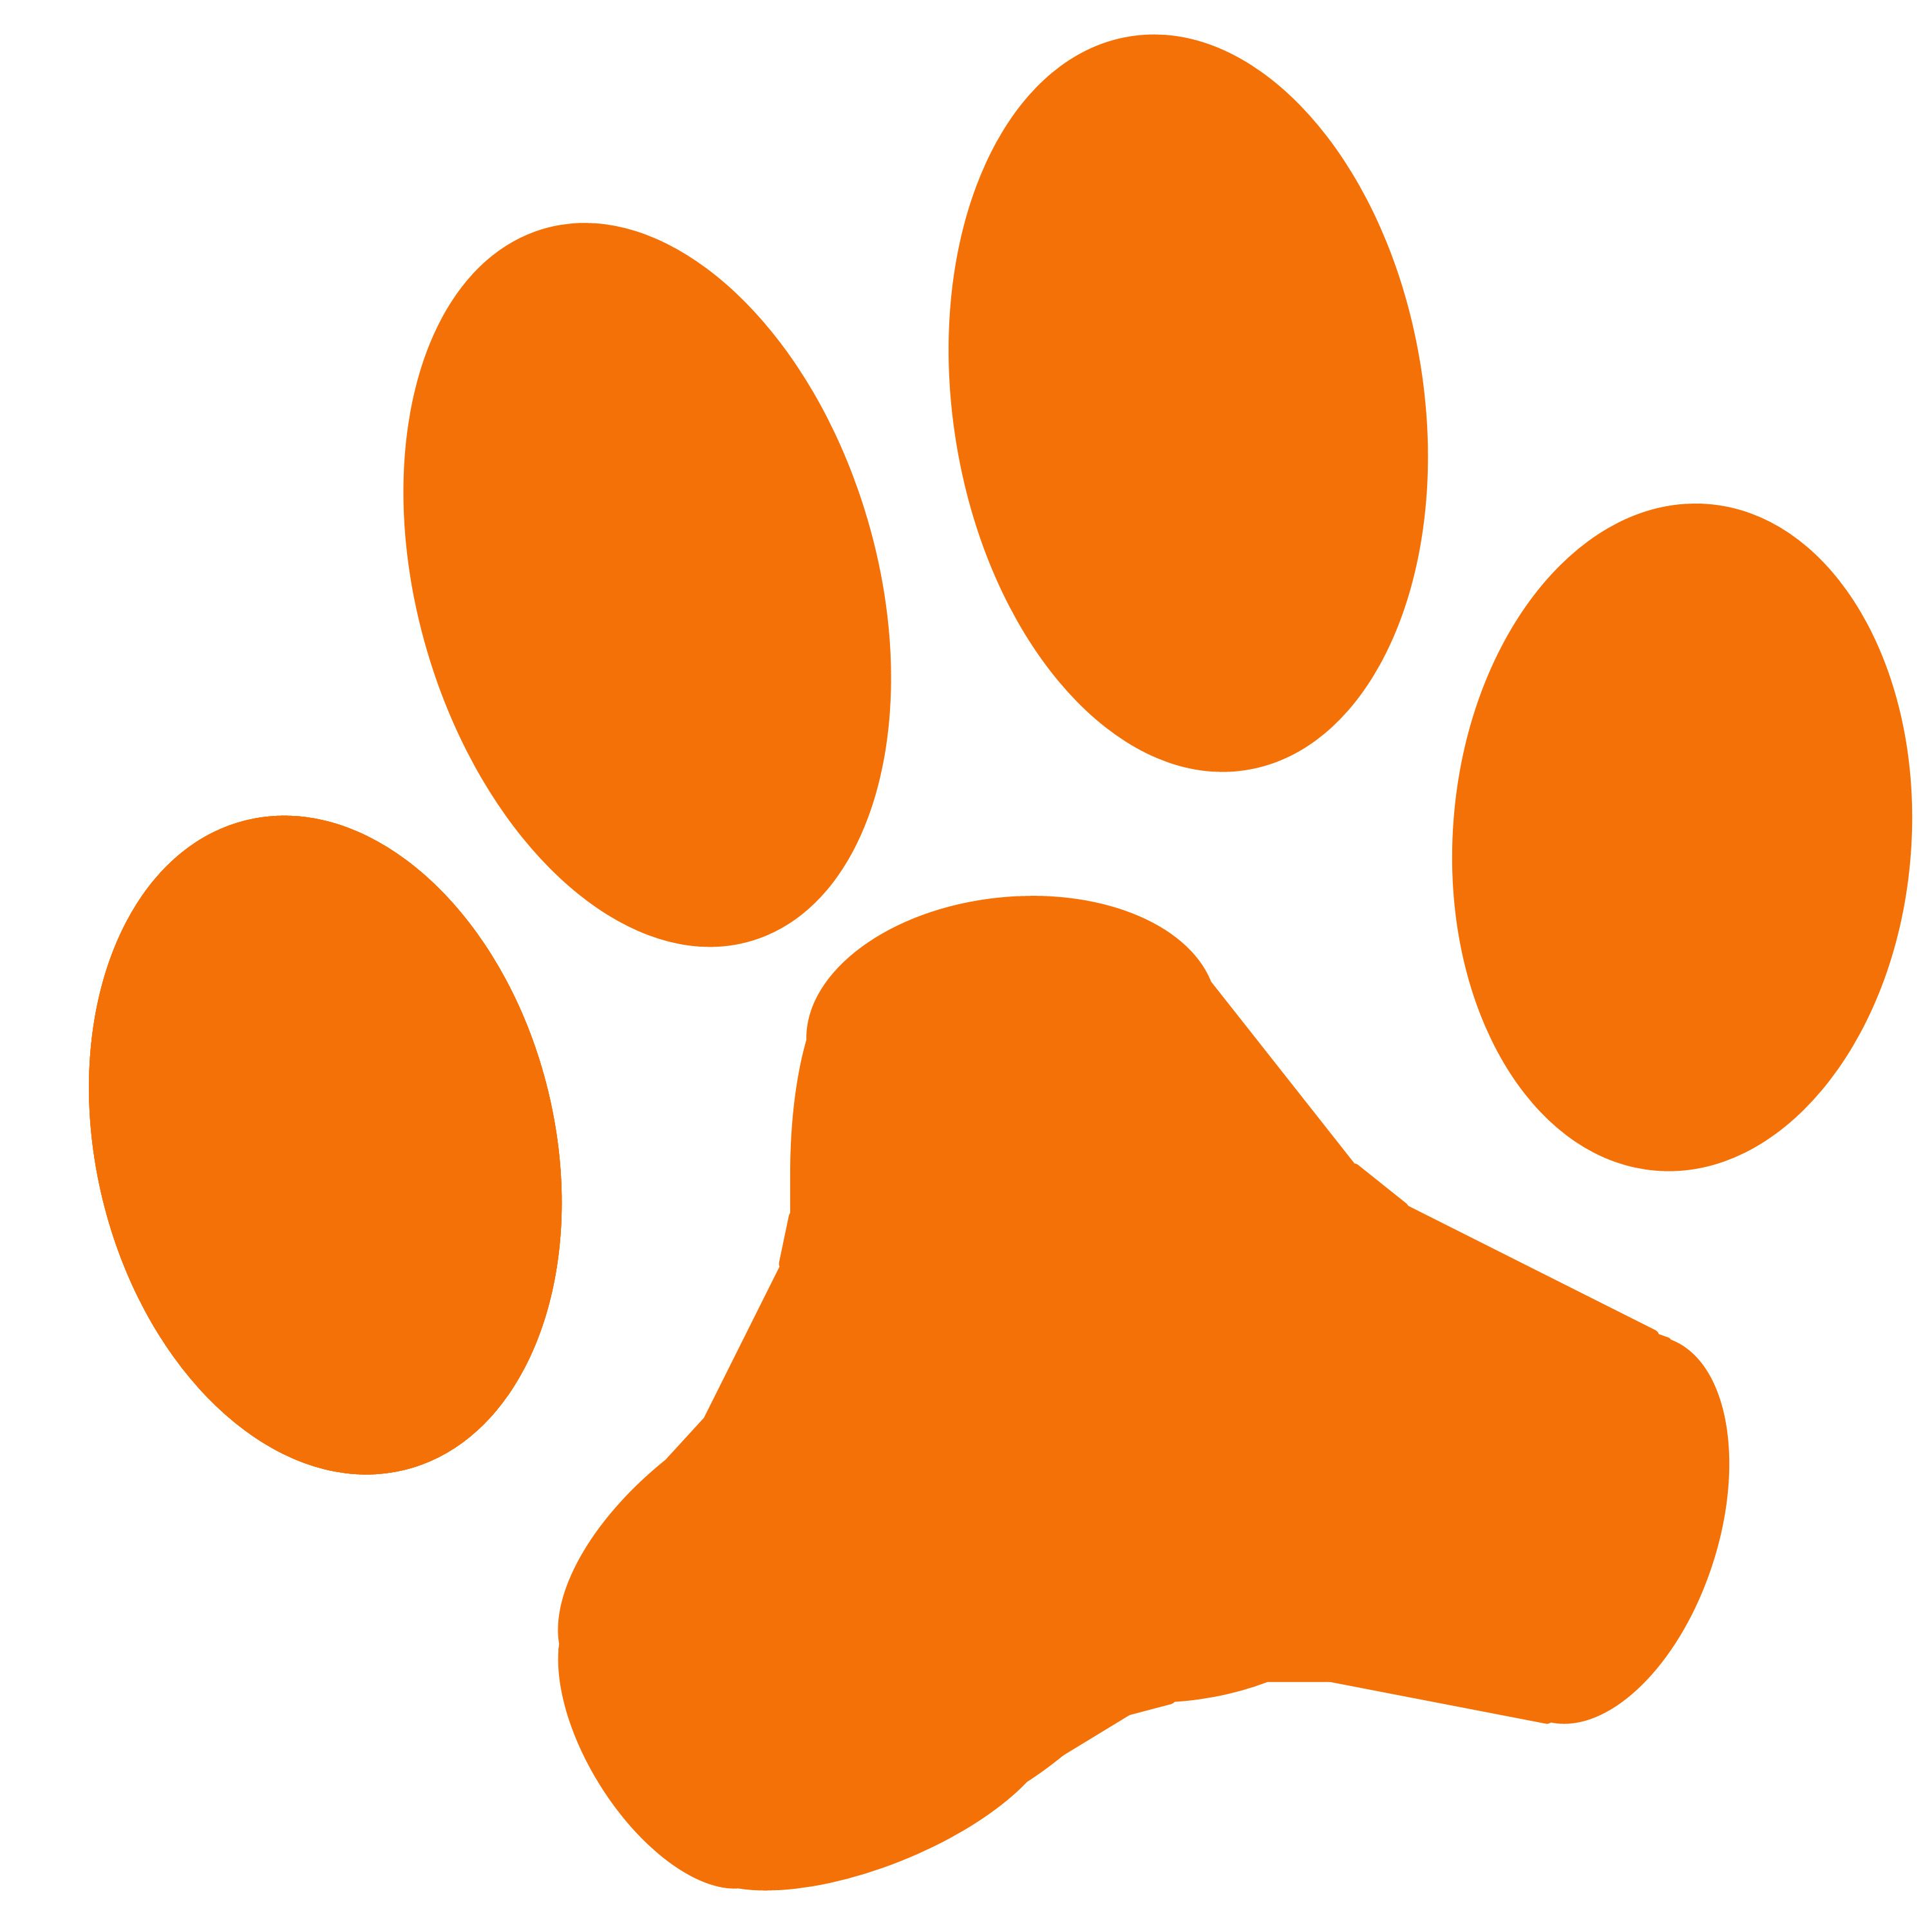 Clemson Paw Print That You Can Print Out - ClipArt Best